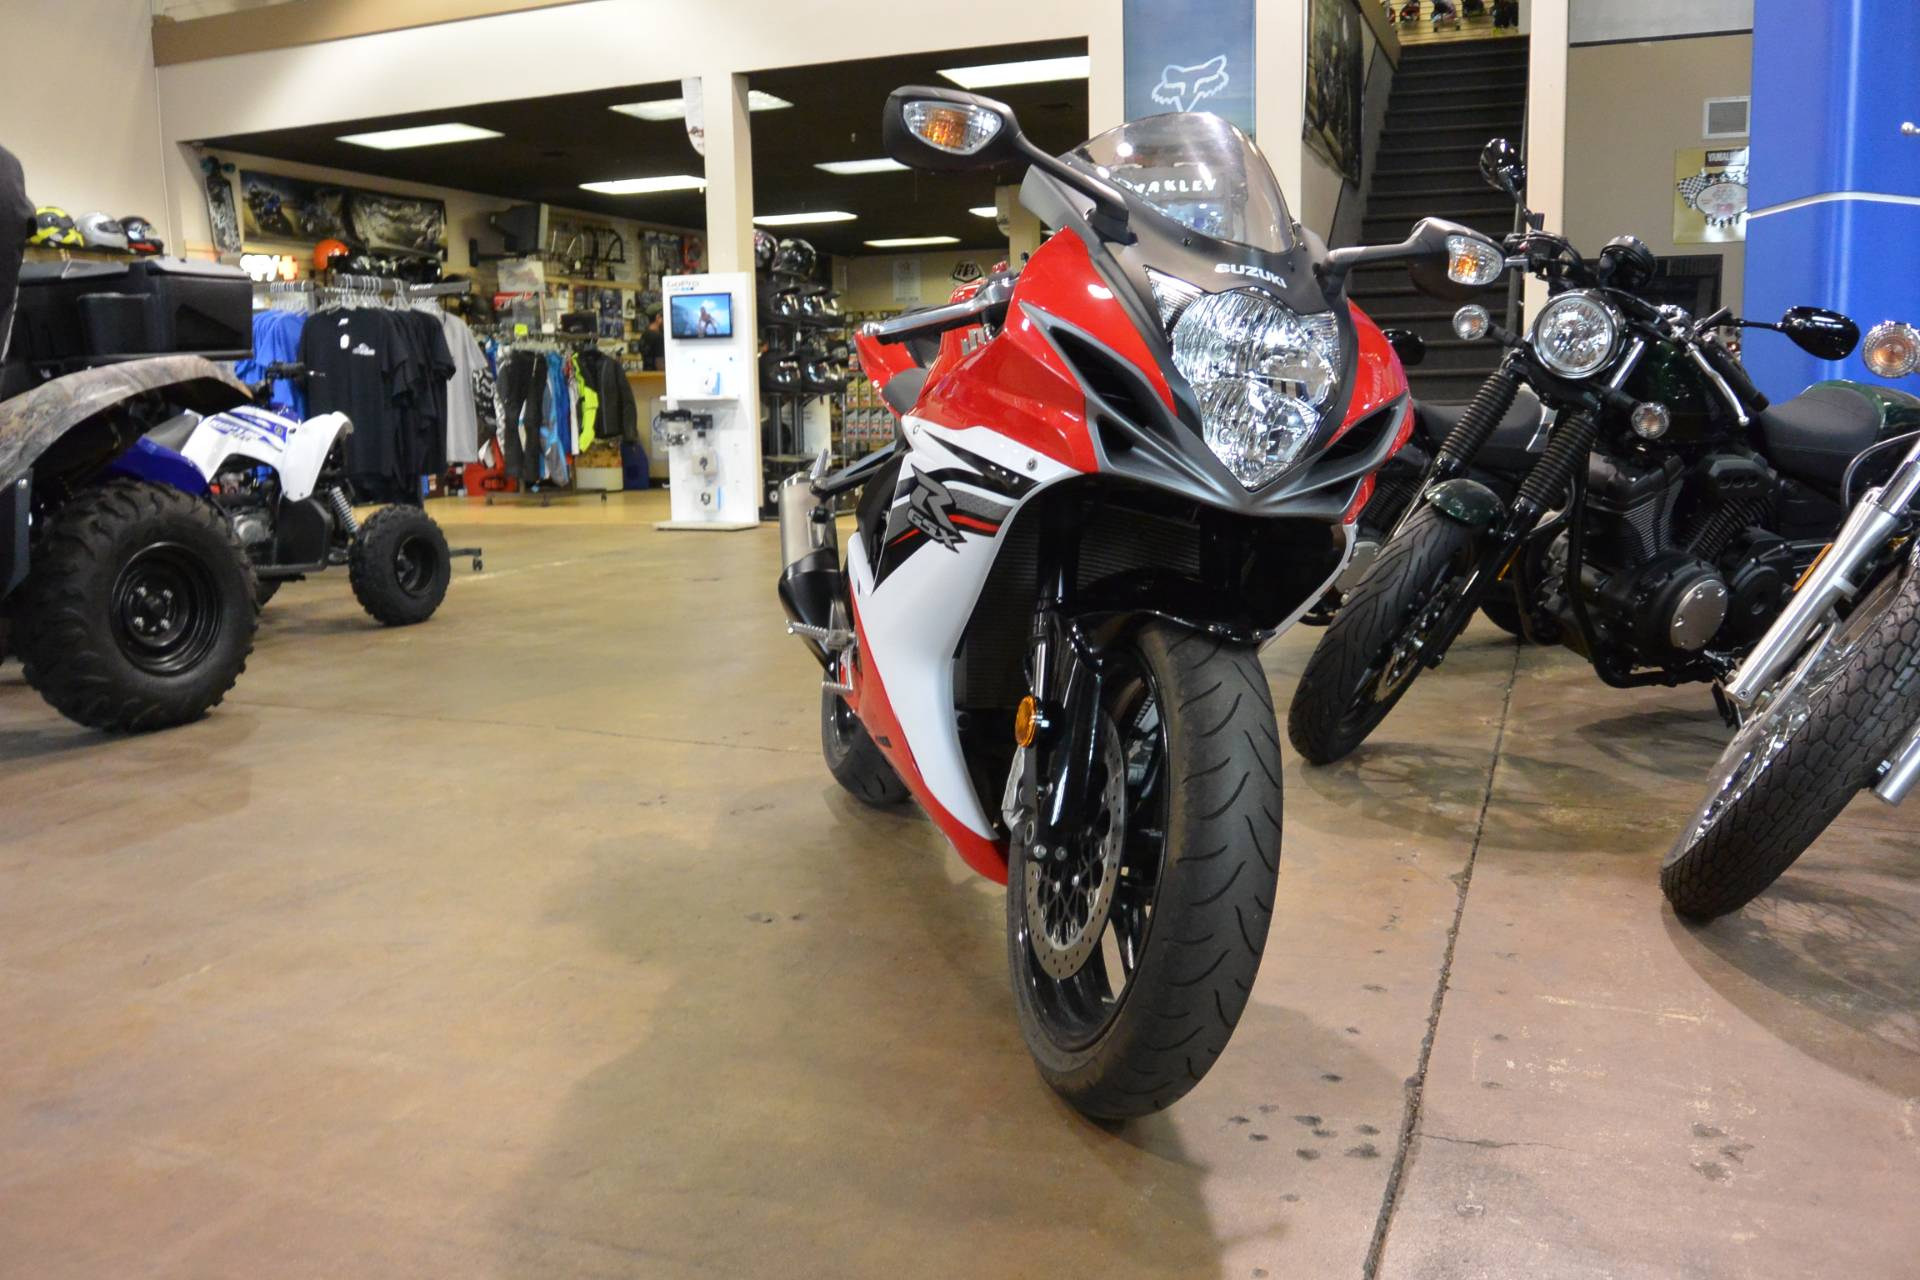 2013 Suzuki Suzuki/ GSXR600L3 in Denver, Colorado